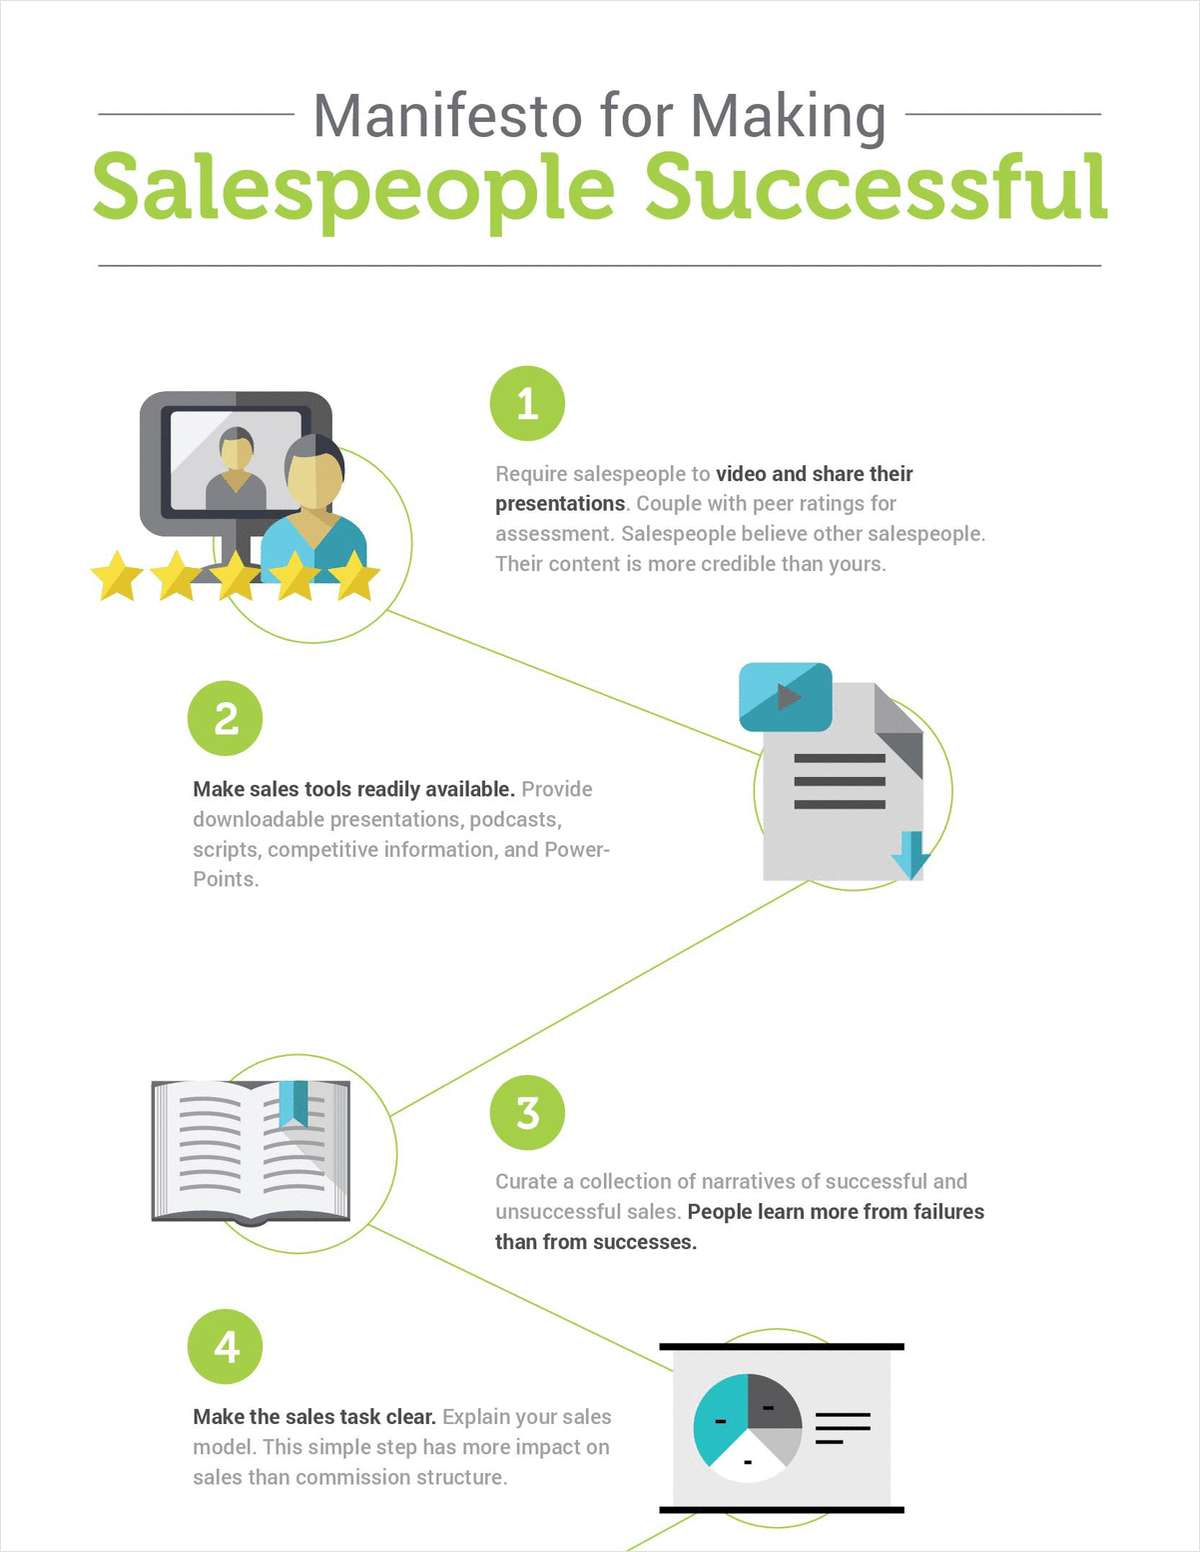 Manifesto for Making Salespeople Successful